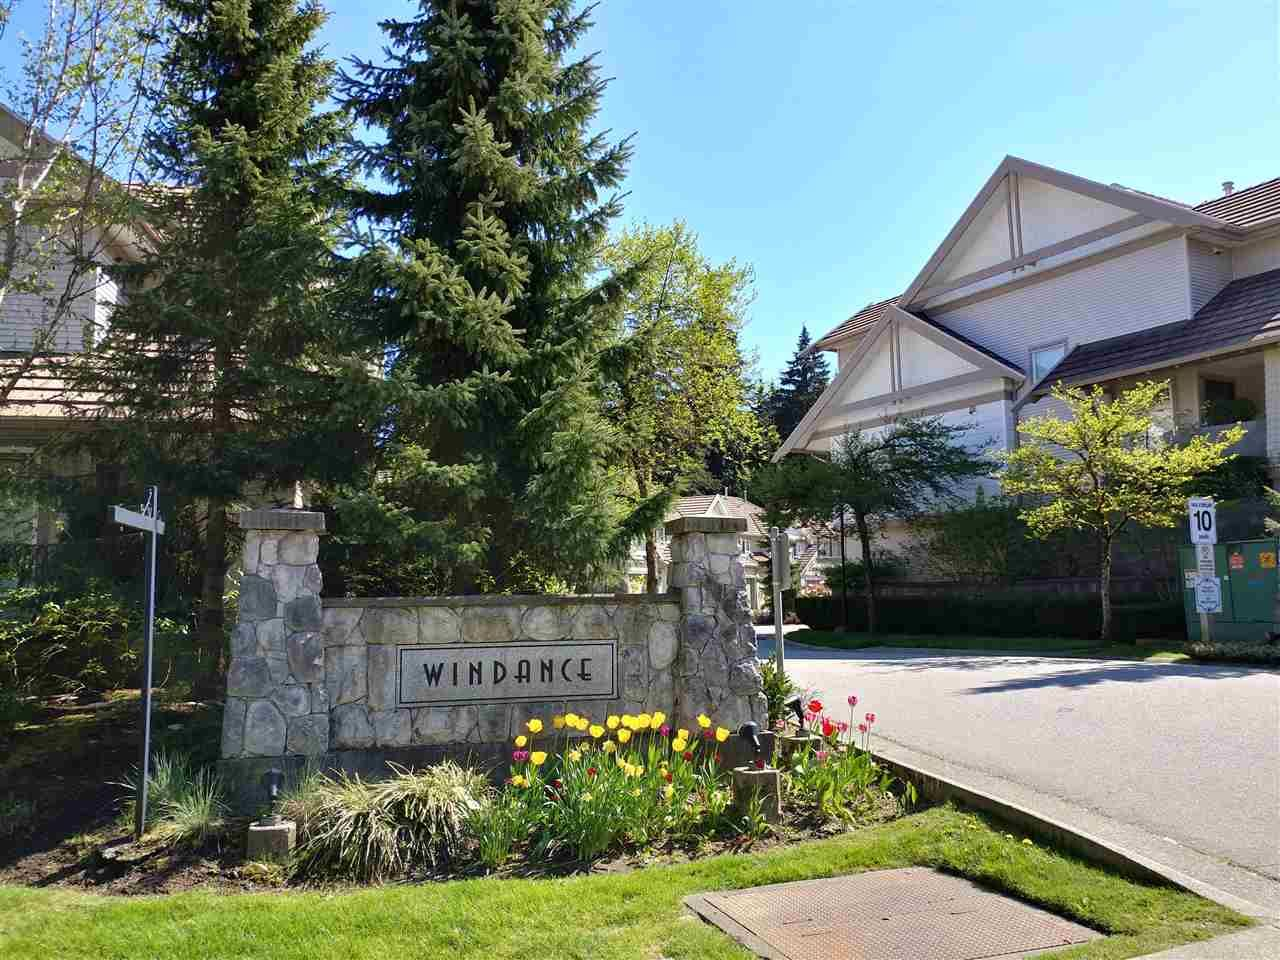 """Main Photo: 25 2351 PARKWAY Boulevard in Coquitlam: Westwood Plateau Townhouse for sale in """"WINDANCE"""" : MLS®# R2545095"""